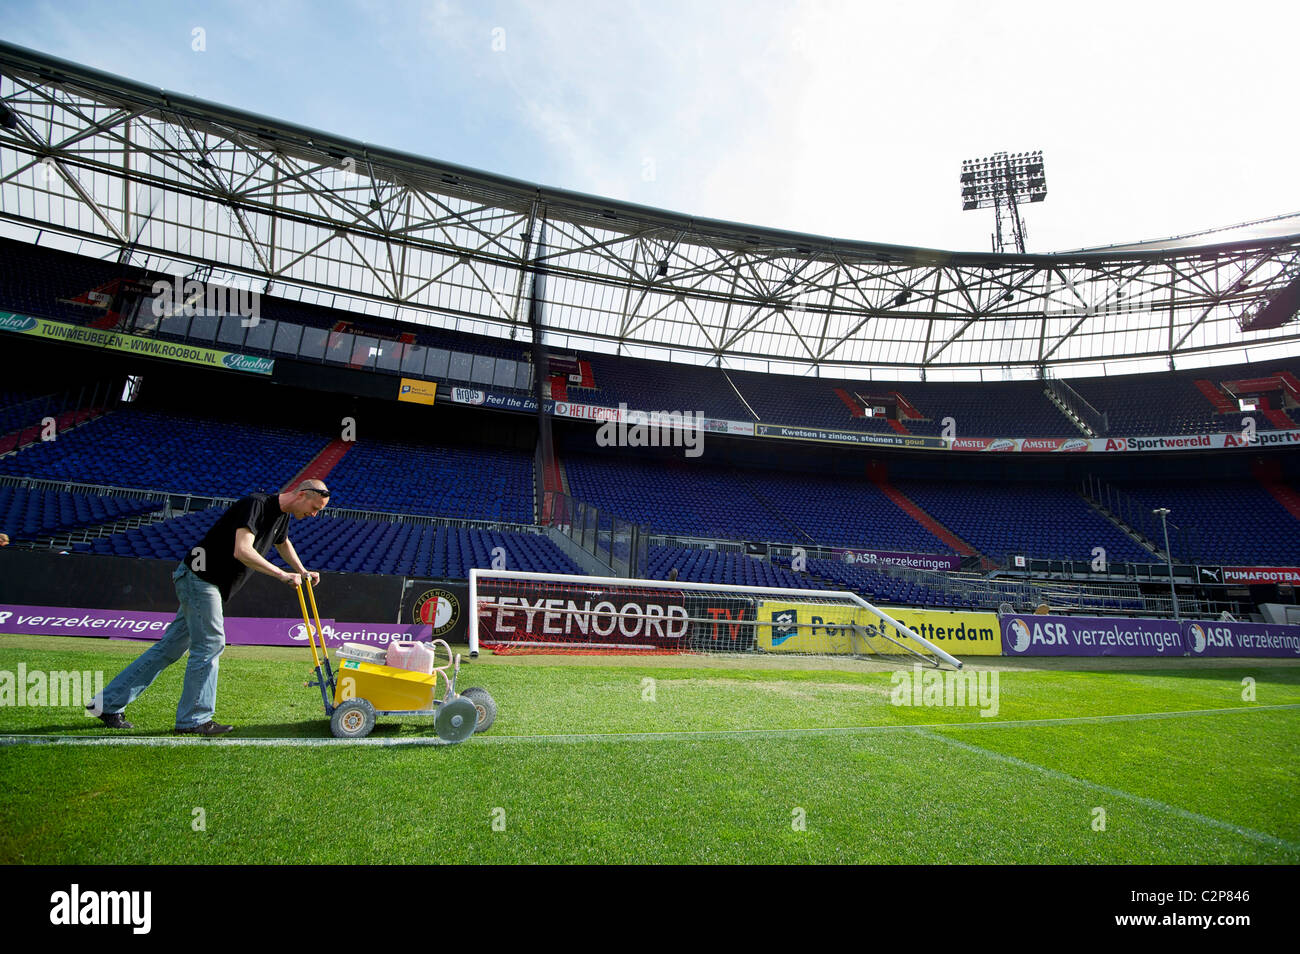 Holland rotterdam groundsman at work at football stadium for Bios rotterdam de kuip